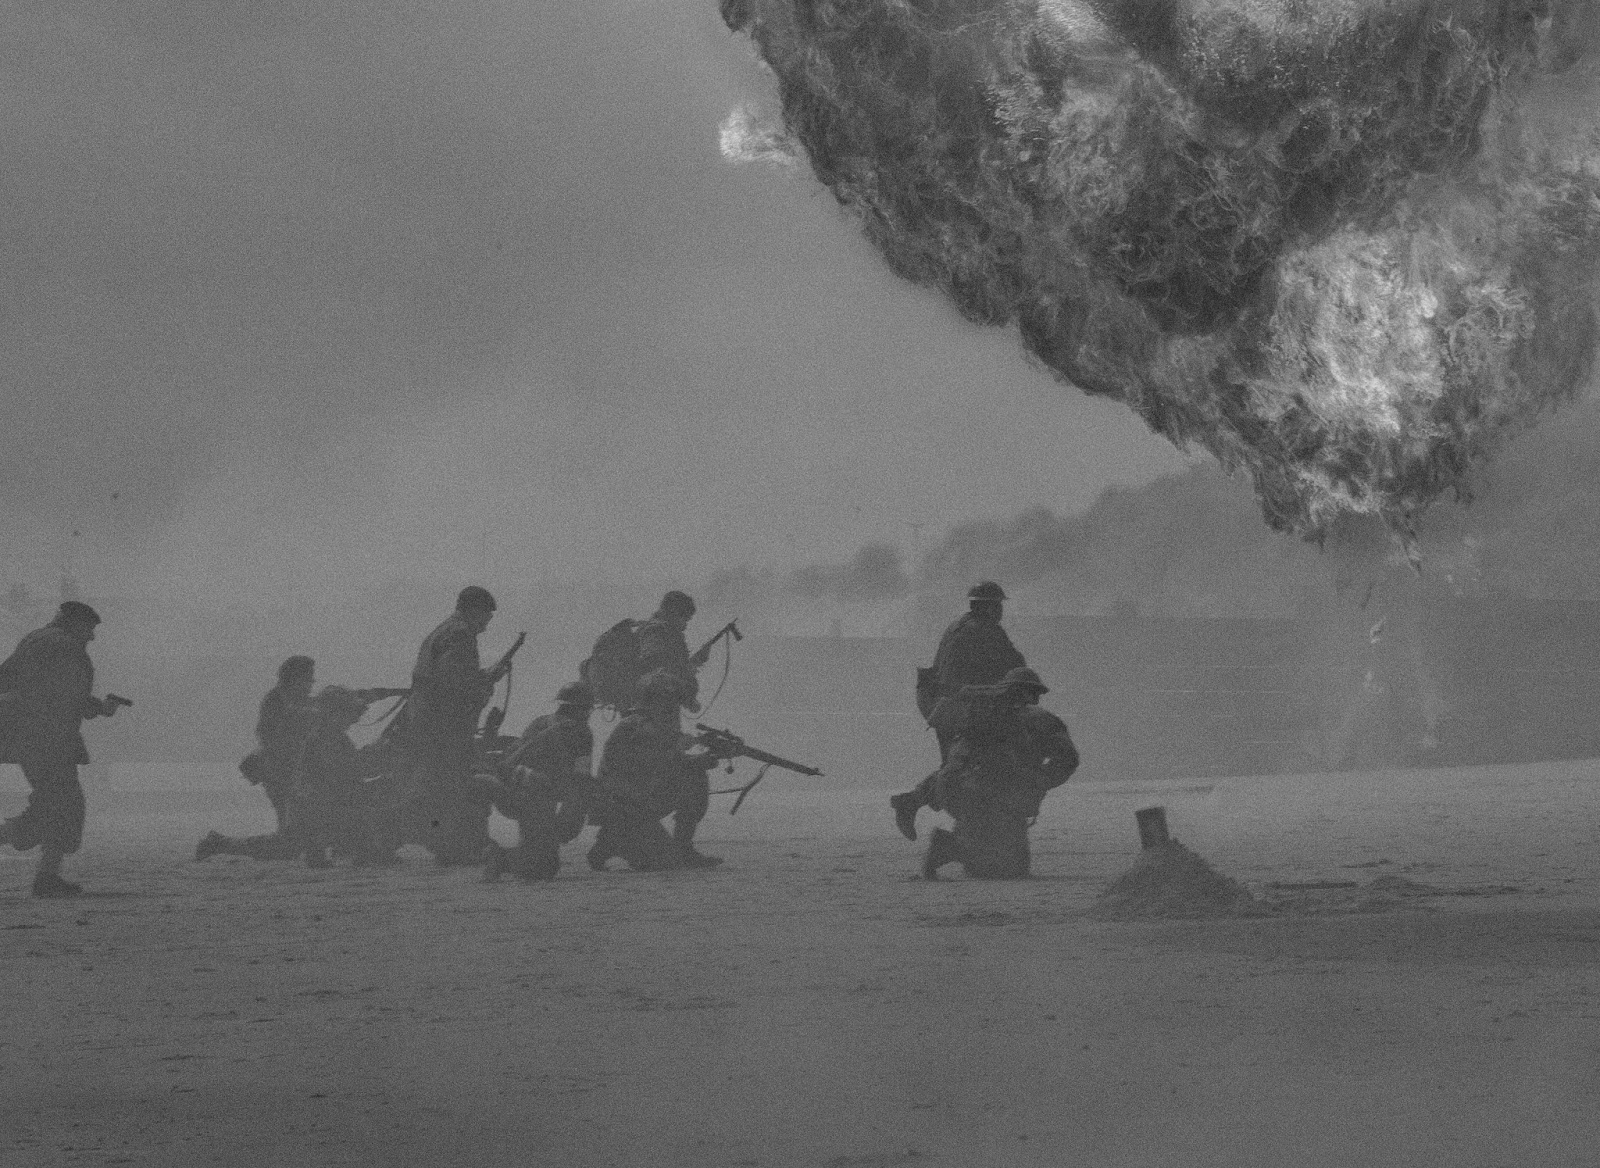 a group of soldiers storm a beach with explosions in the background for blog post about war movies in the pacfic theater of world war 2